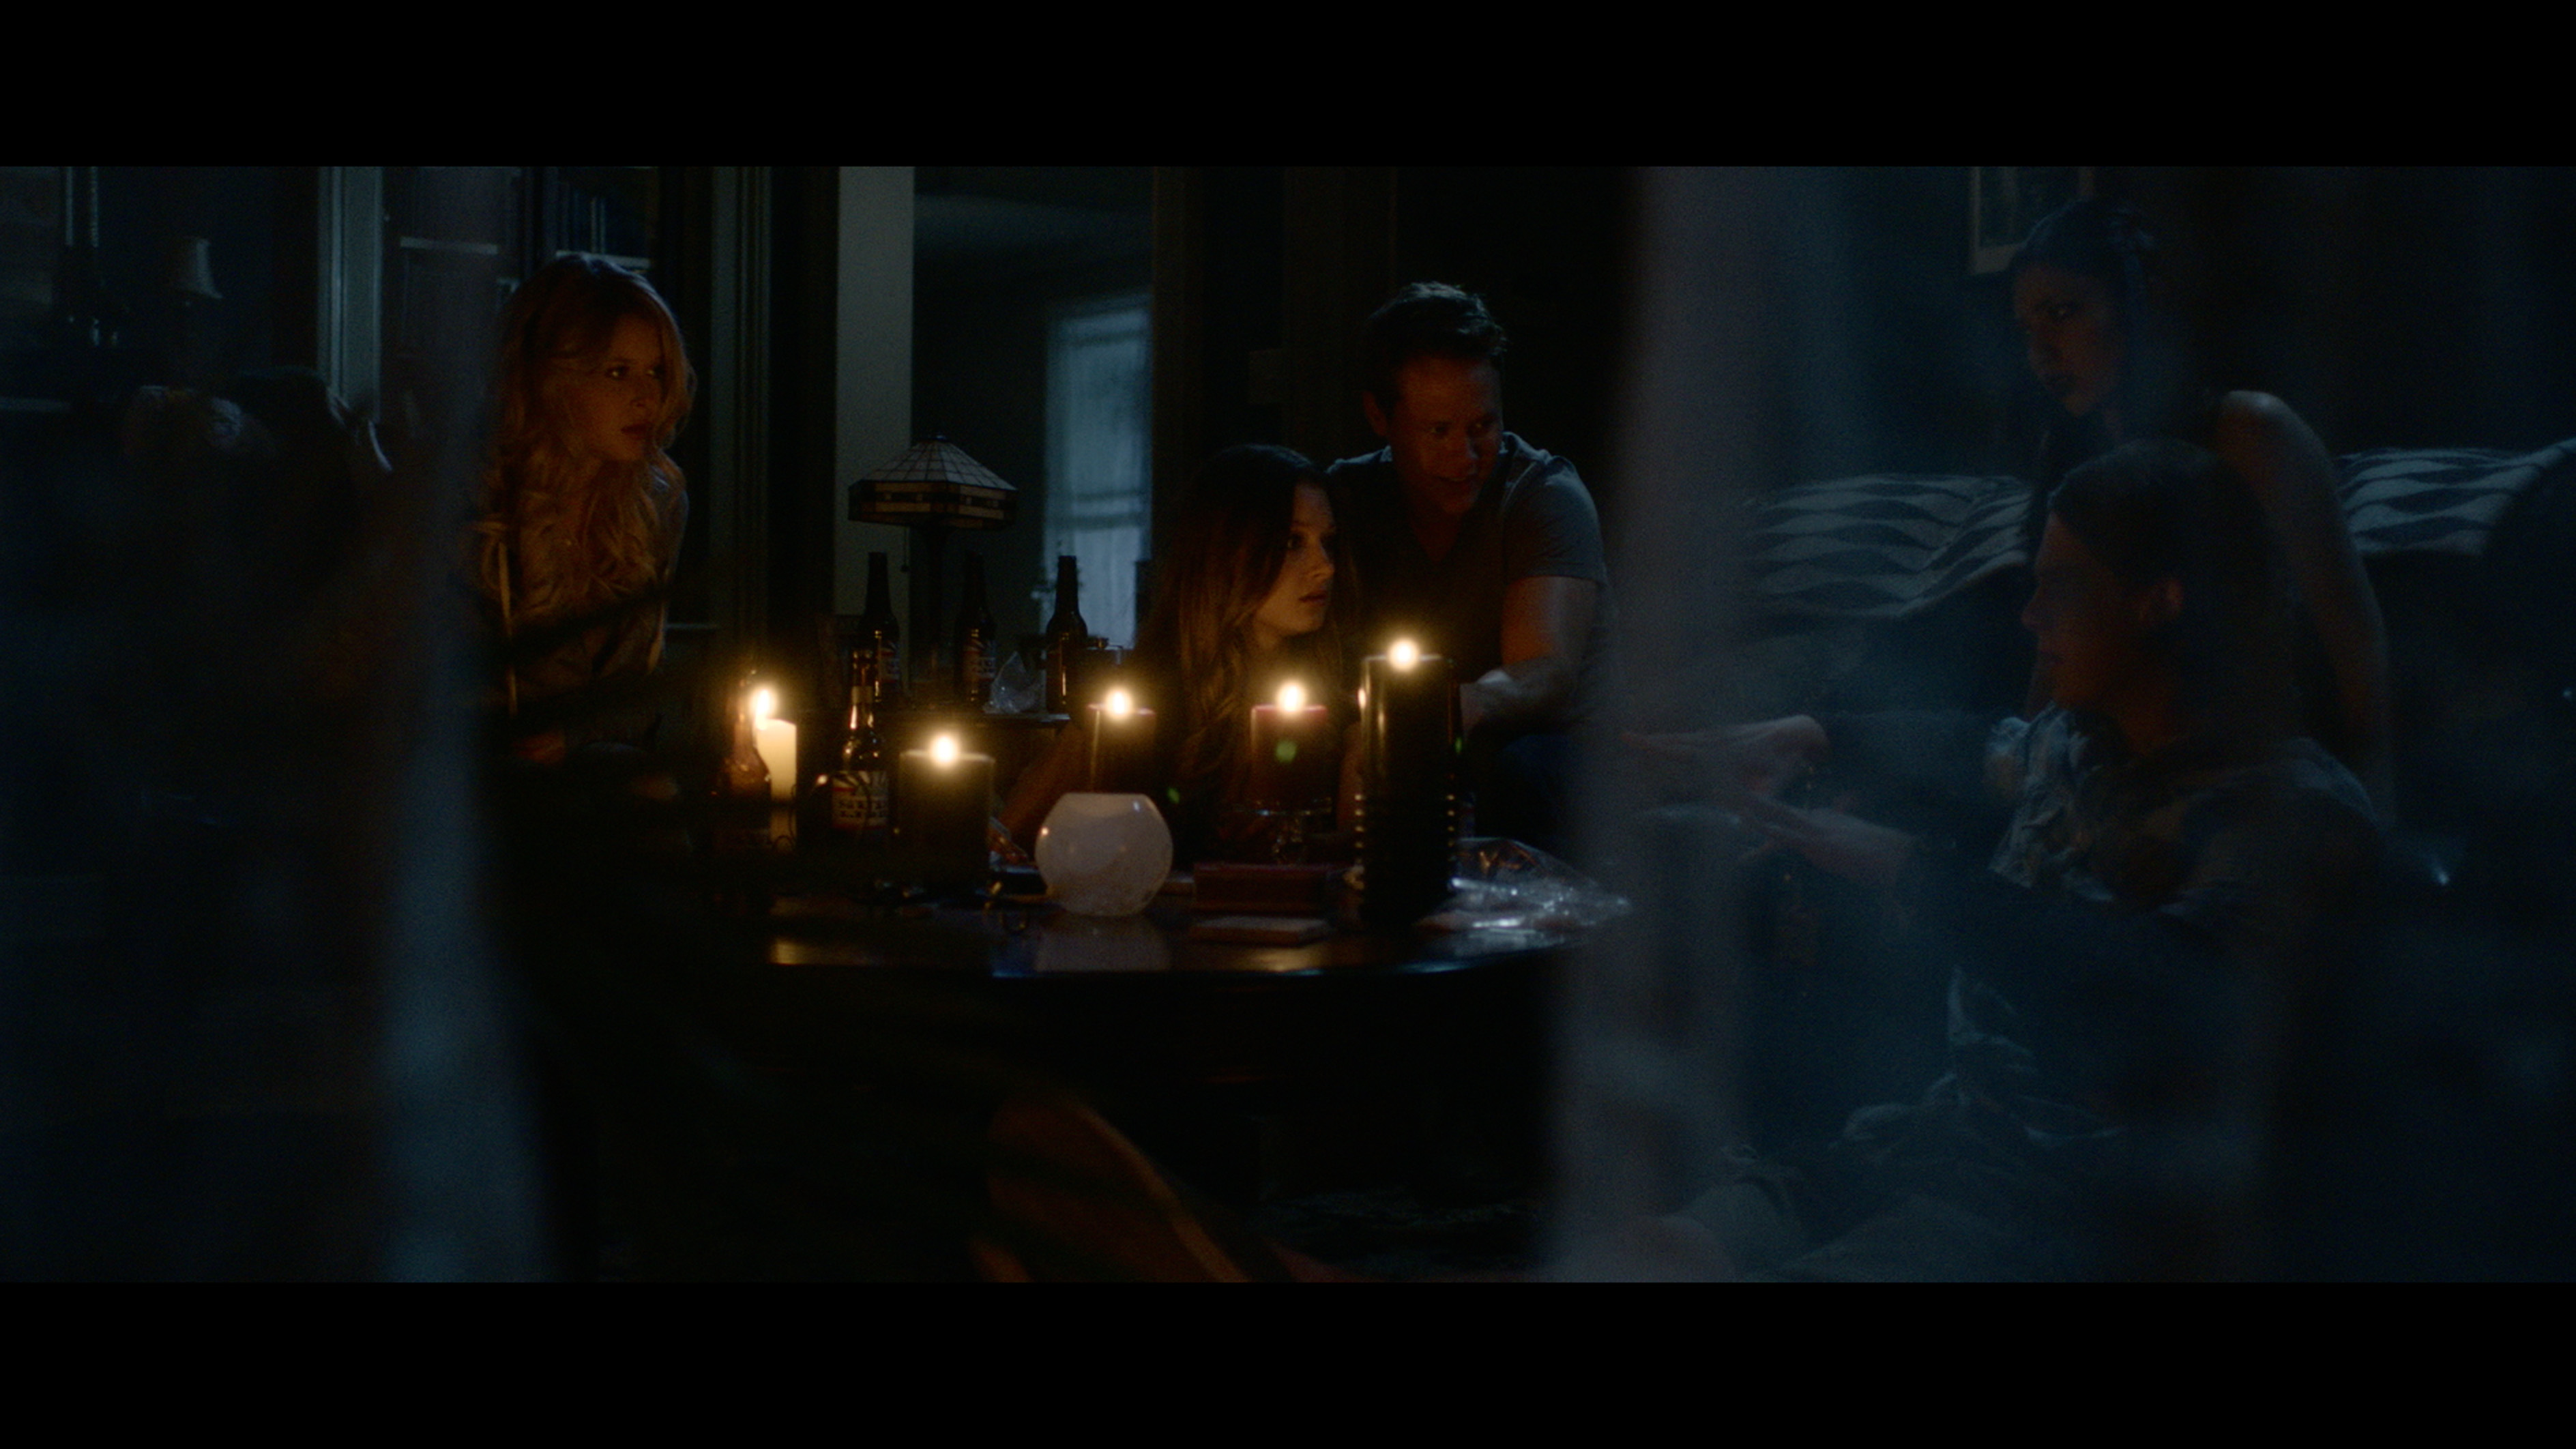 Renee Olstead, Guy Wilson, Valentina de Angelis, Spencer Daniels, and Shelby Young in The Midnight Game (2013)